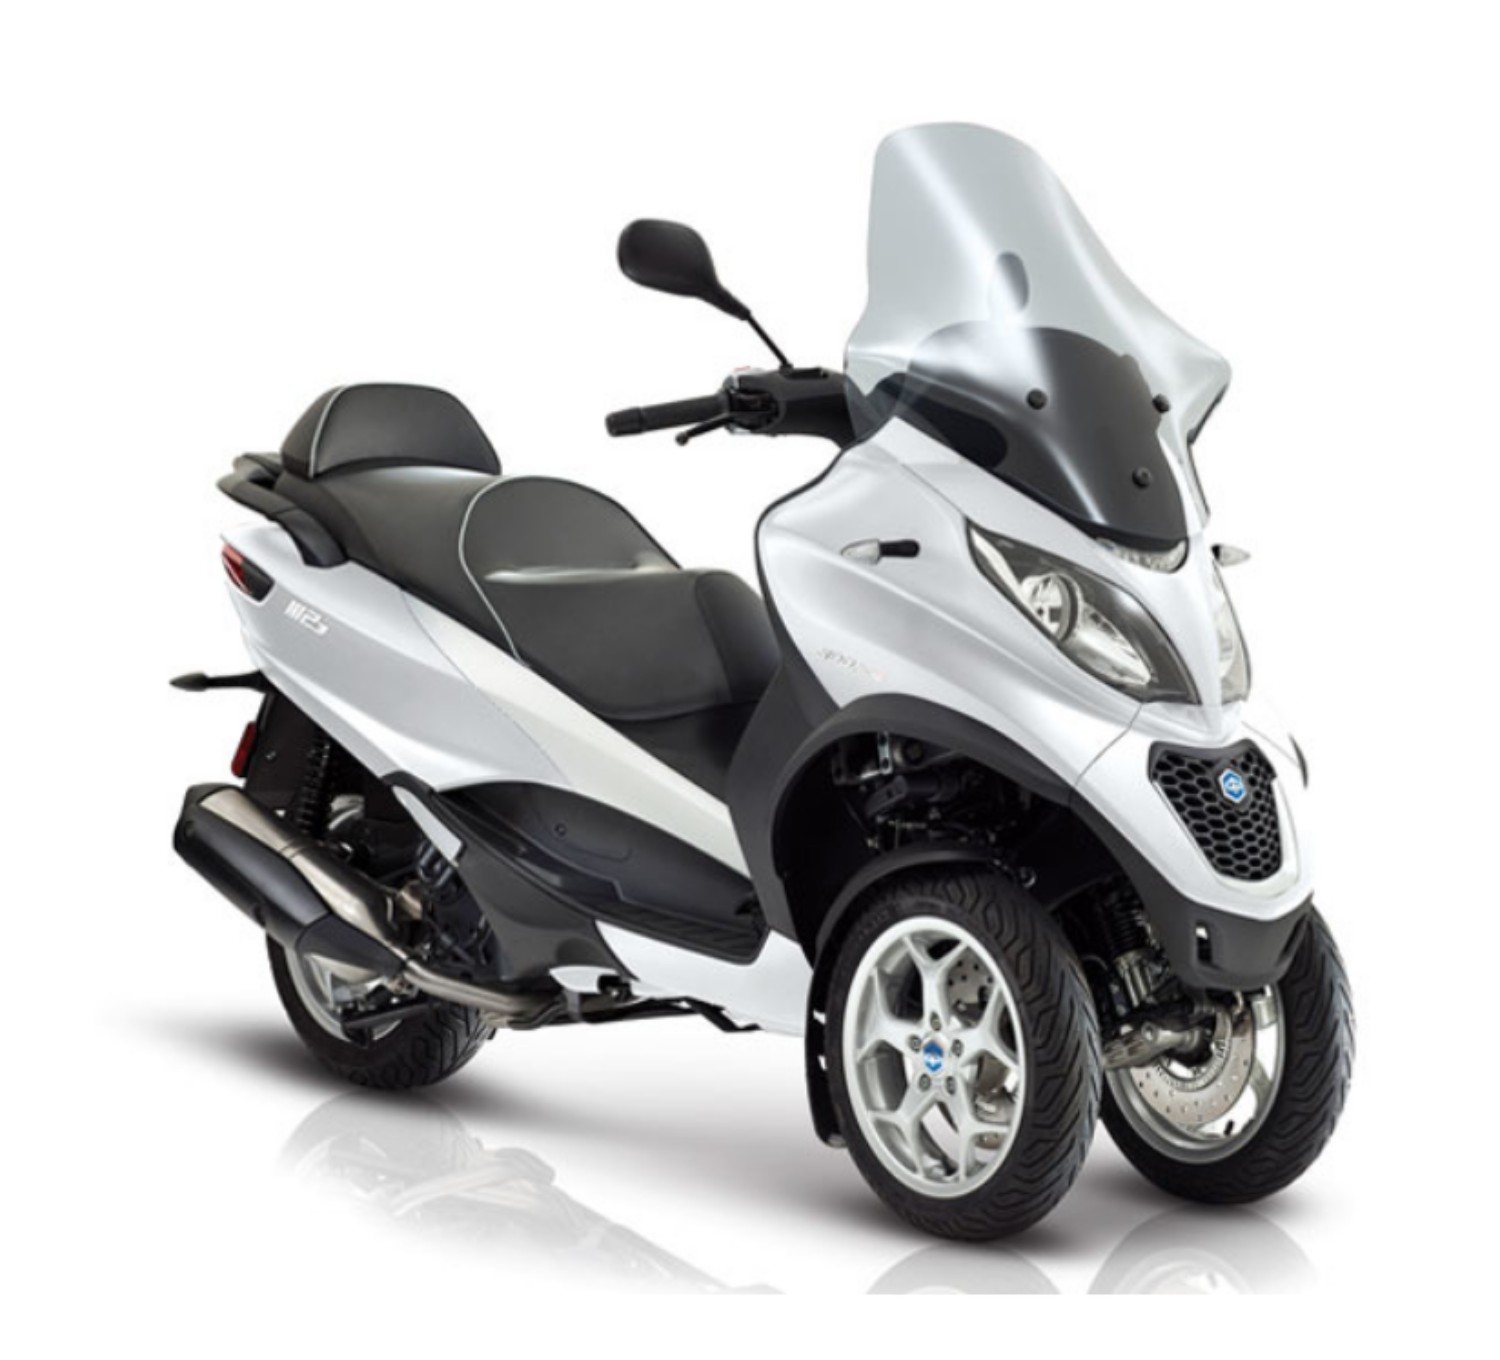 Piaggio MP3 MP3 500 HPE ABS-ASR BUSINESS / Sport